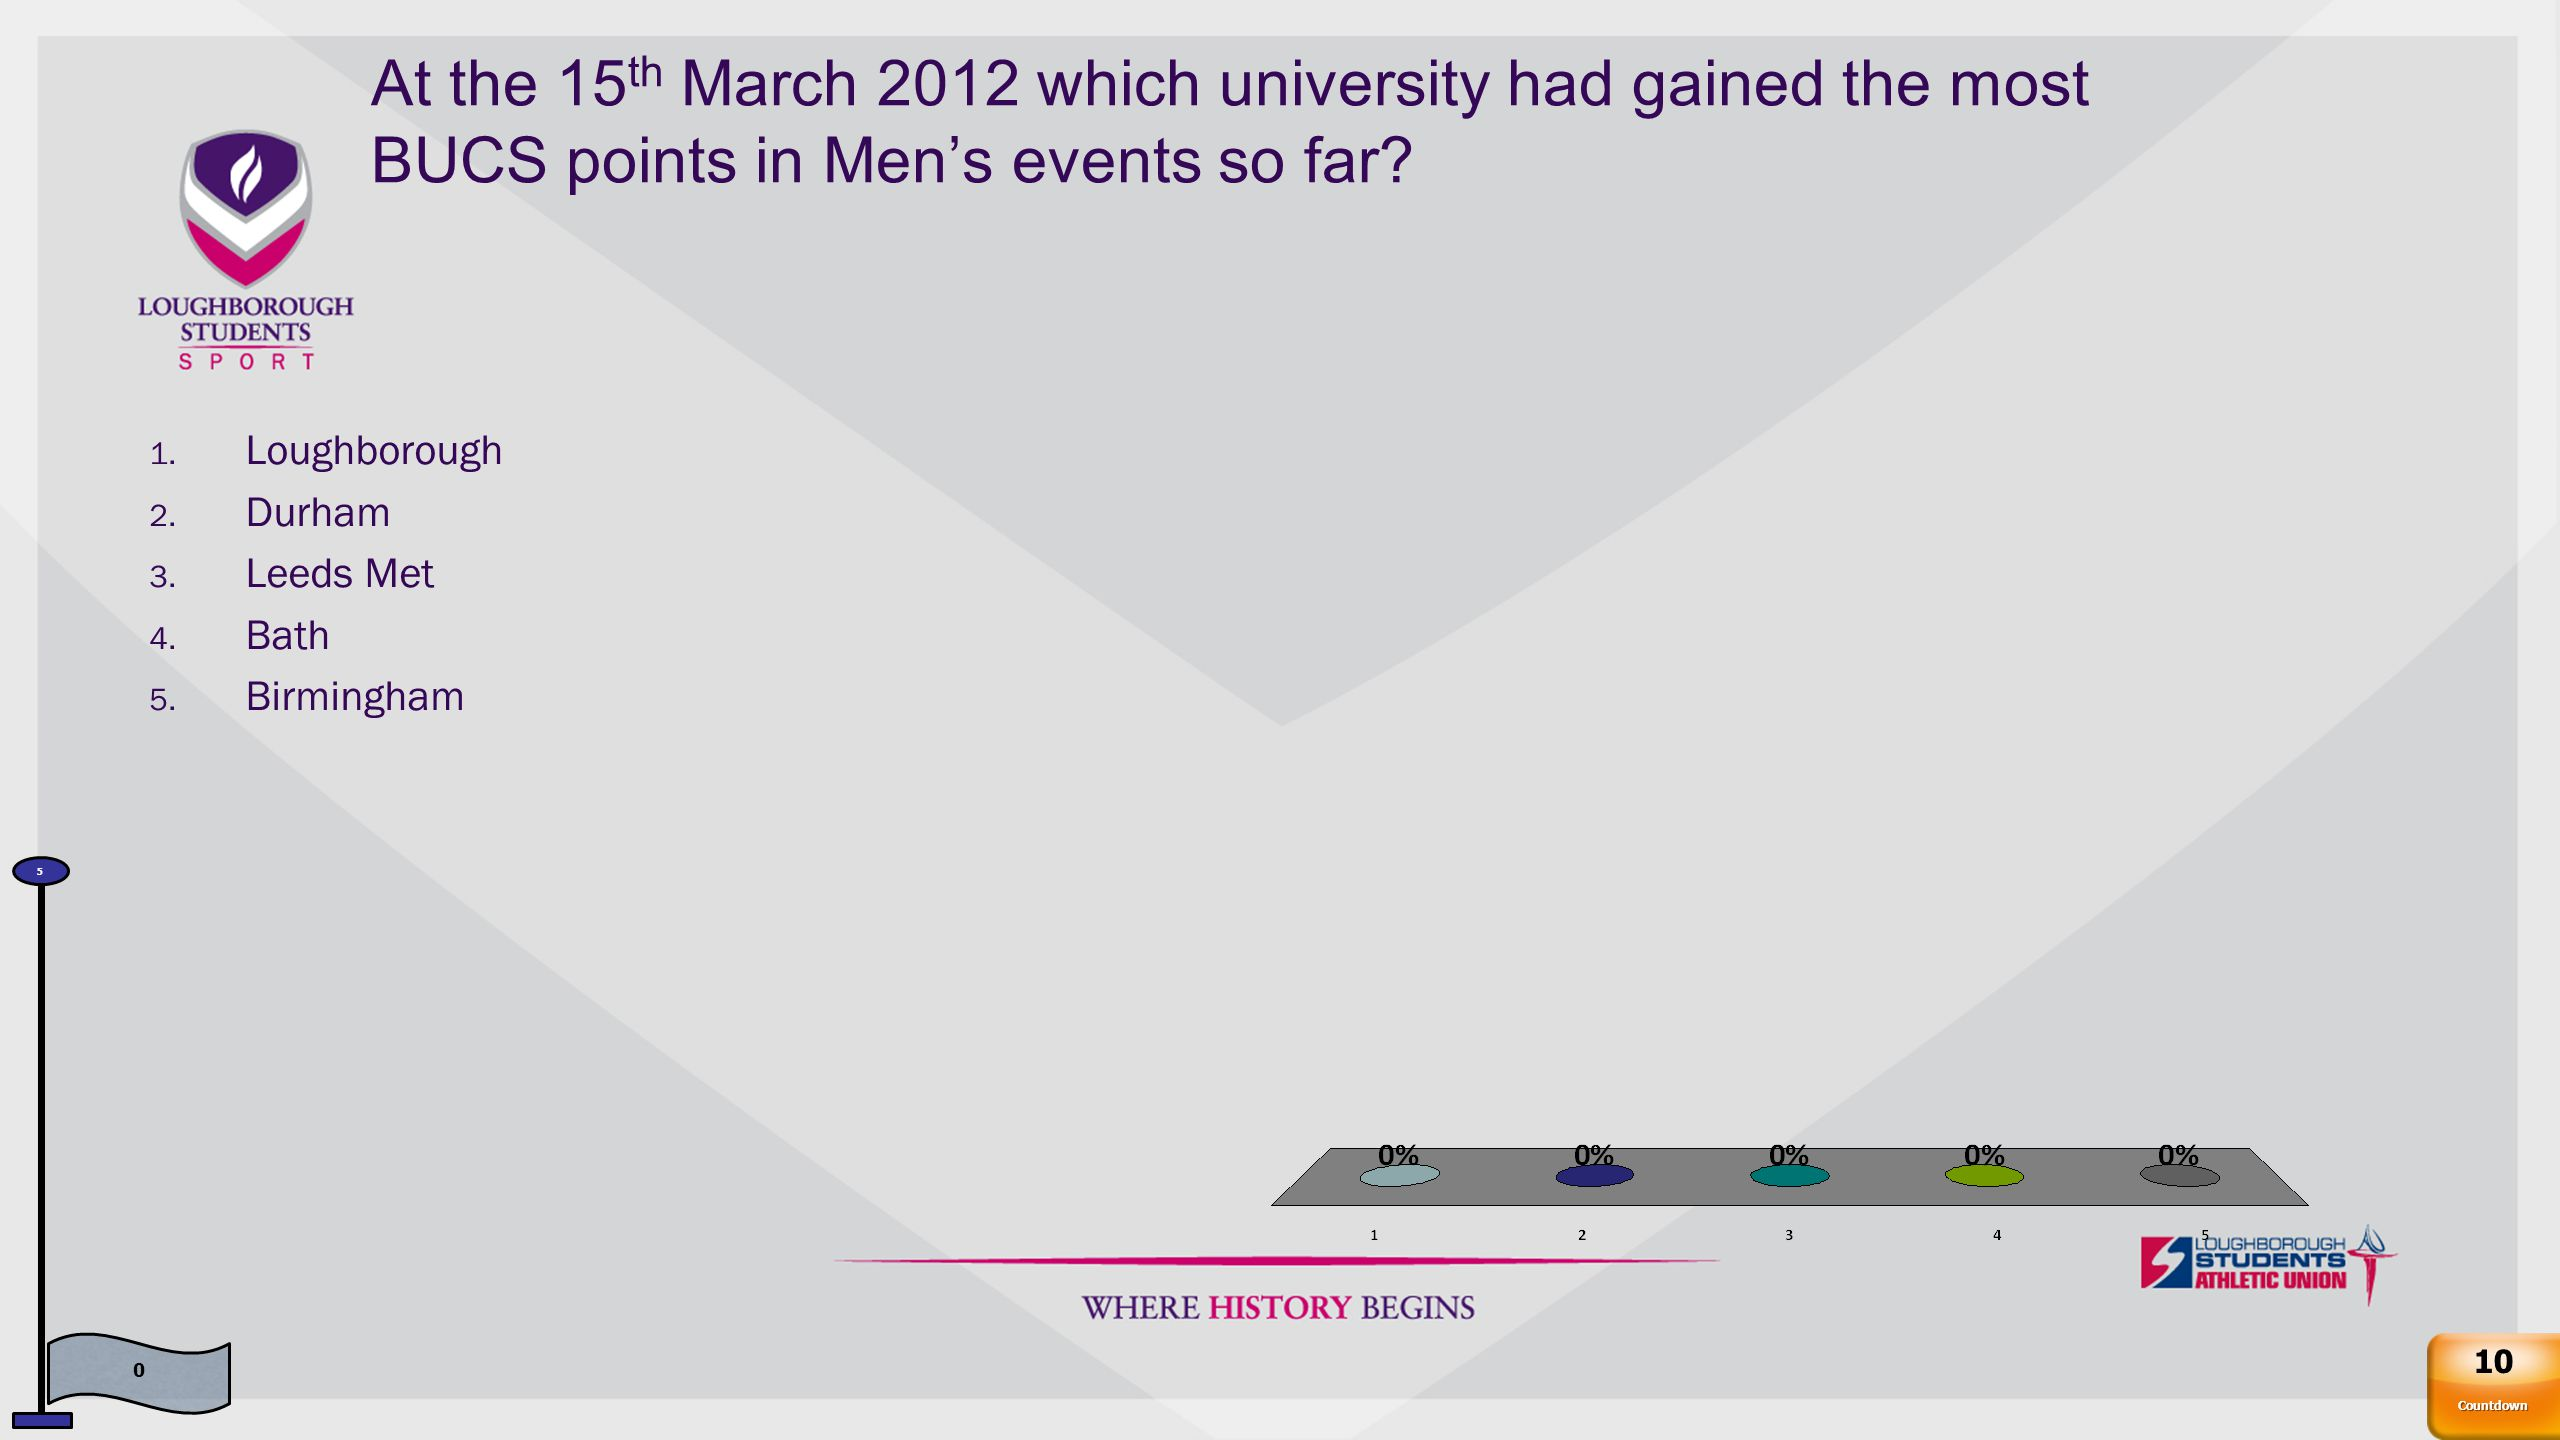 At the 15 th March 2012 which university had gained the most BUCS points in Women's events so far.